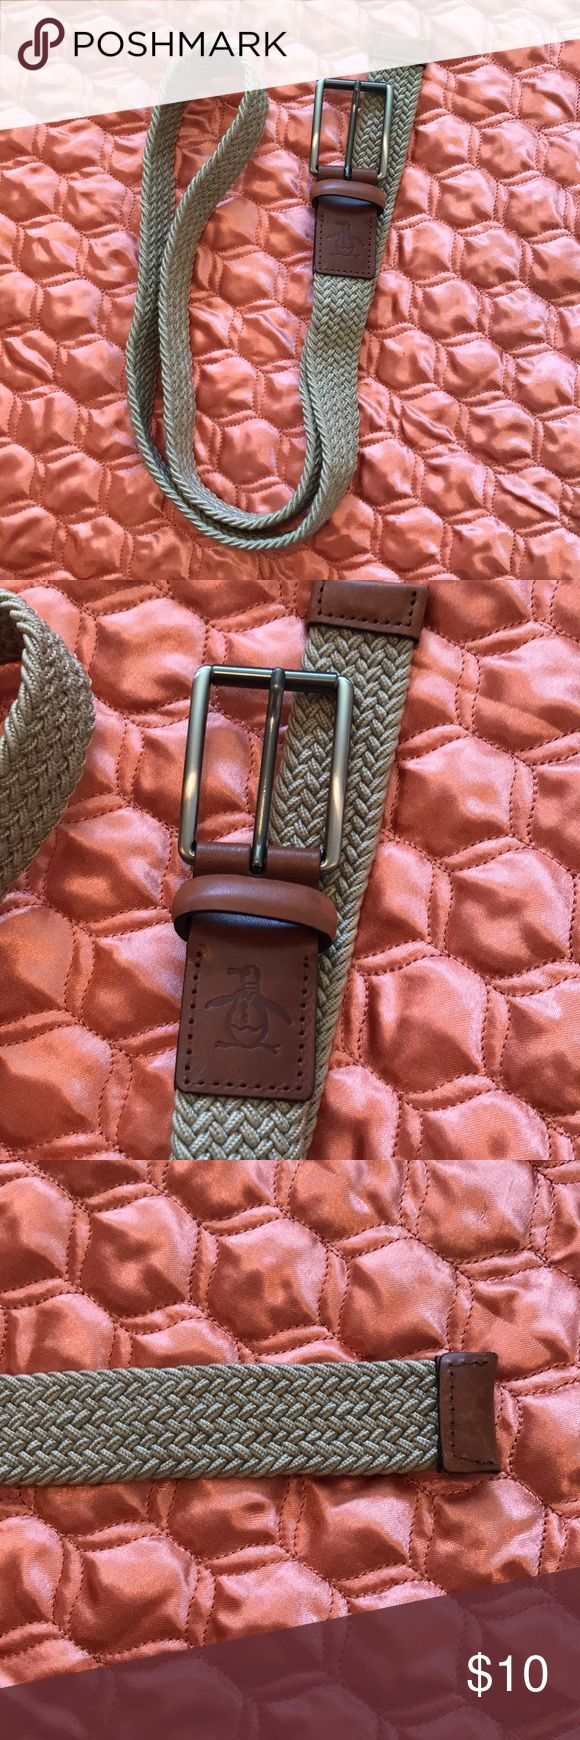 Penguin brand beige braided belt Beige cowhide braided belt Gently used  Penguin brand  Approximately 49 inches from tip to tip penguin Accessories Belts